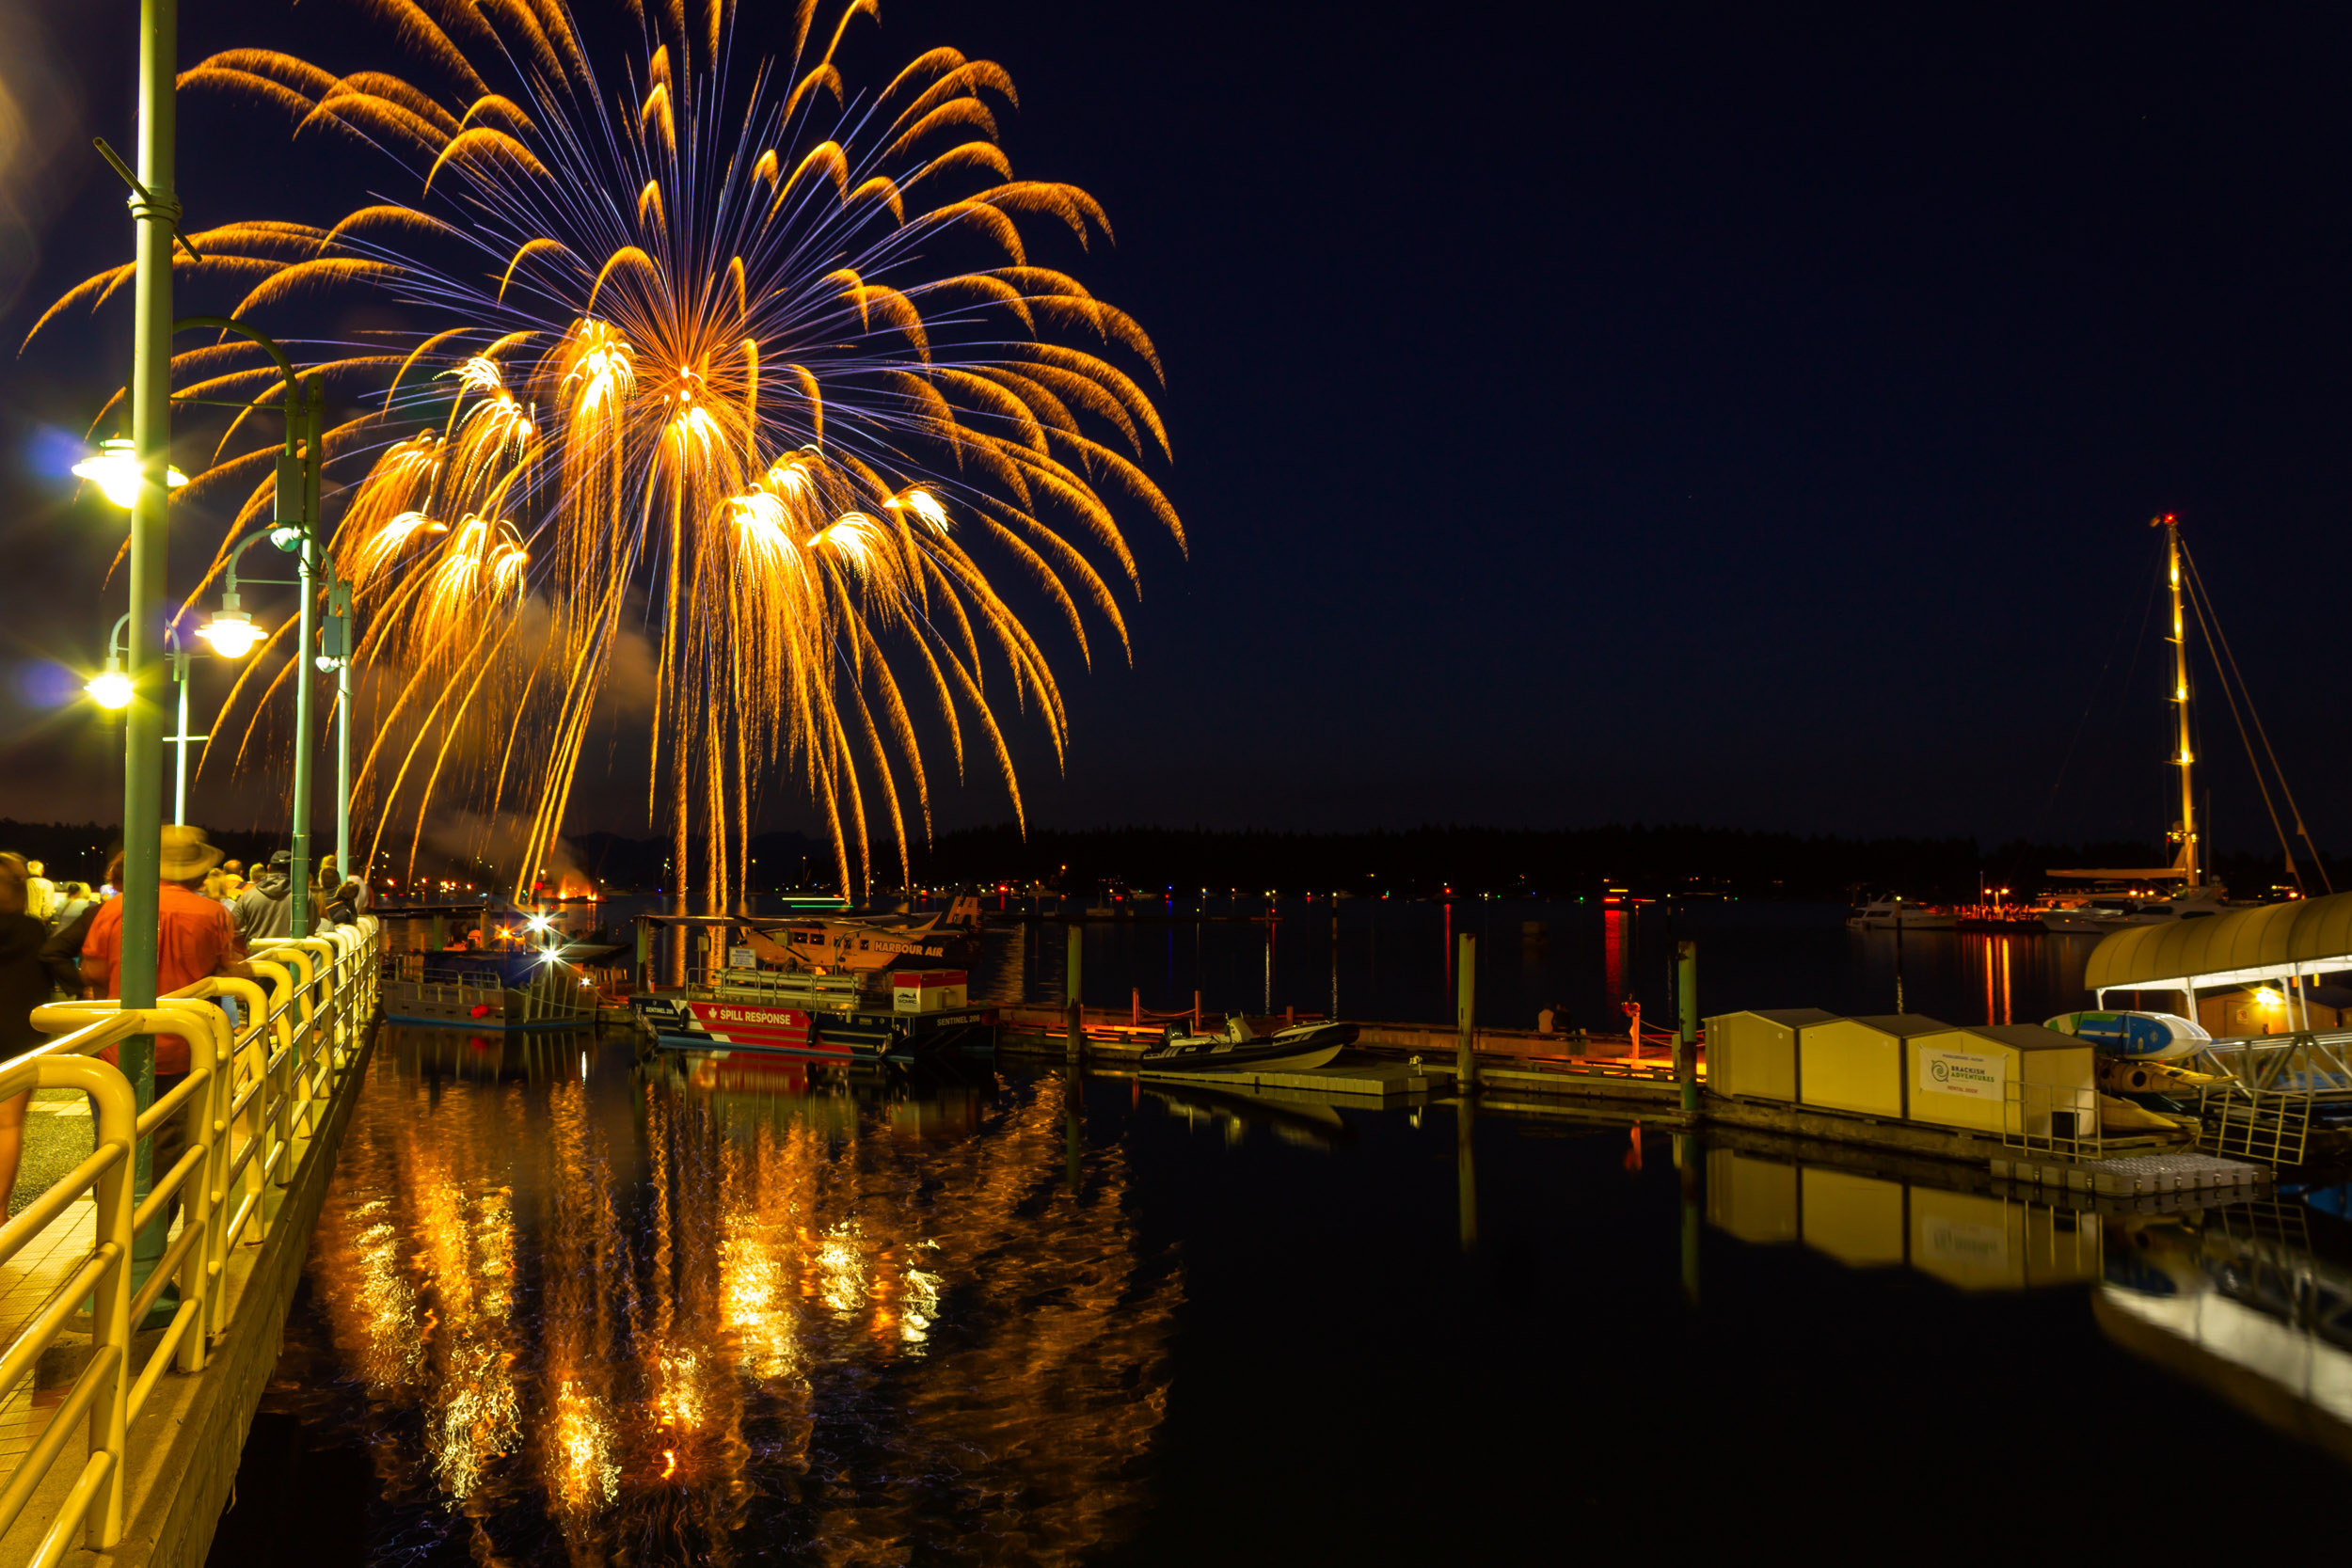 2018 Canada Day Fireworks   Copyright © Afro Boy Productions. All rights reserved.